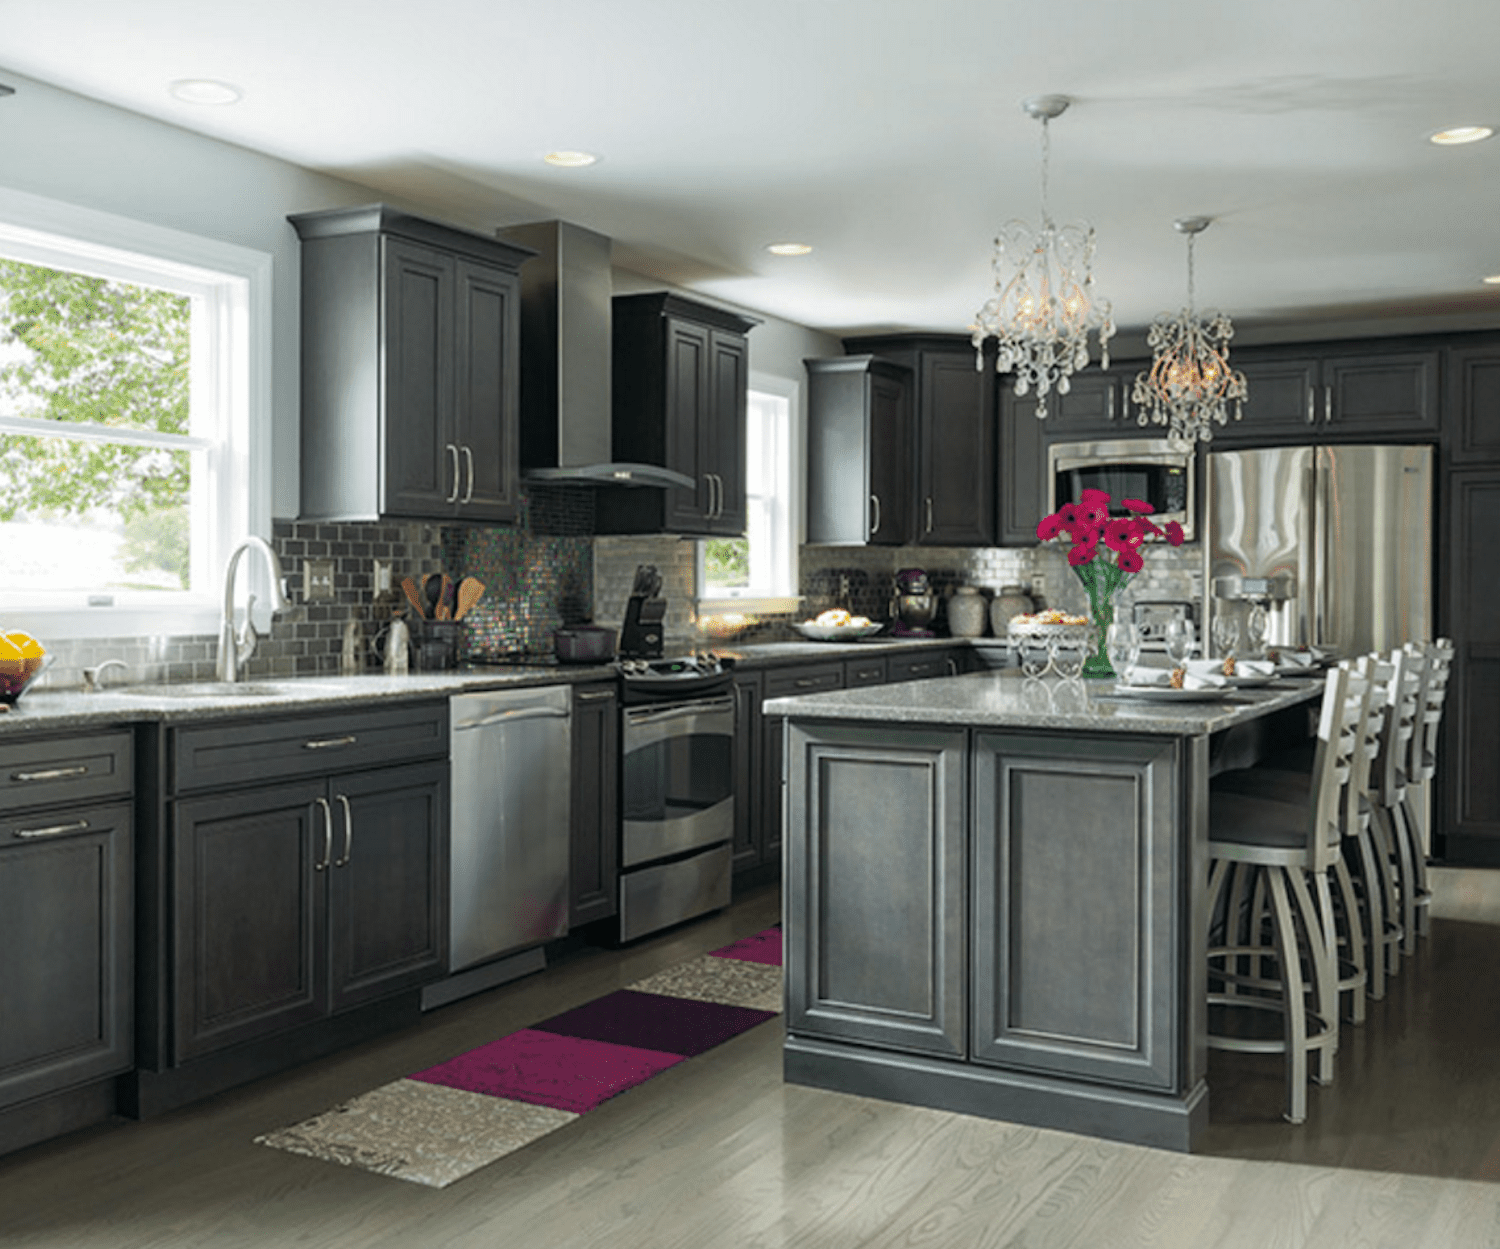 Inspiring Gray Kitchen Design Ideas - Kitchen designs with gray cabinets